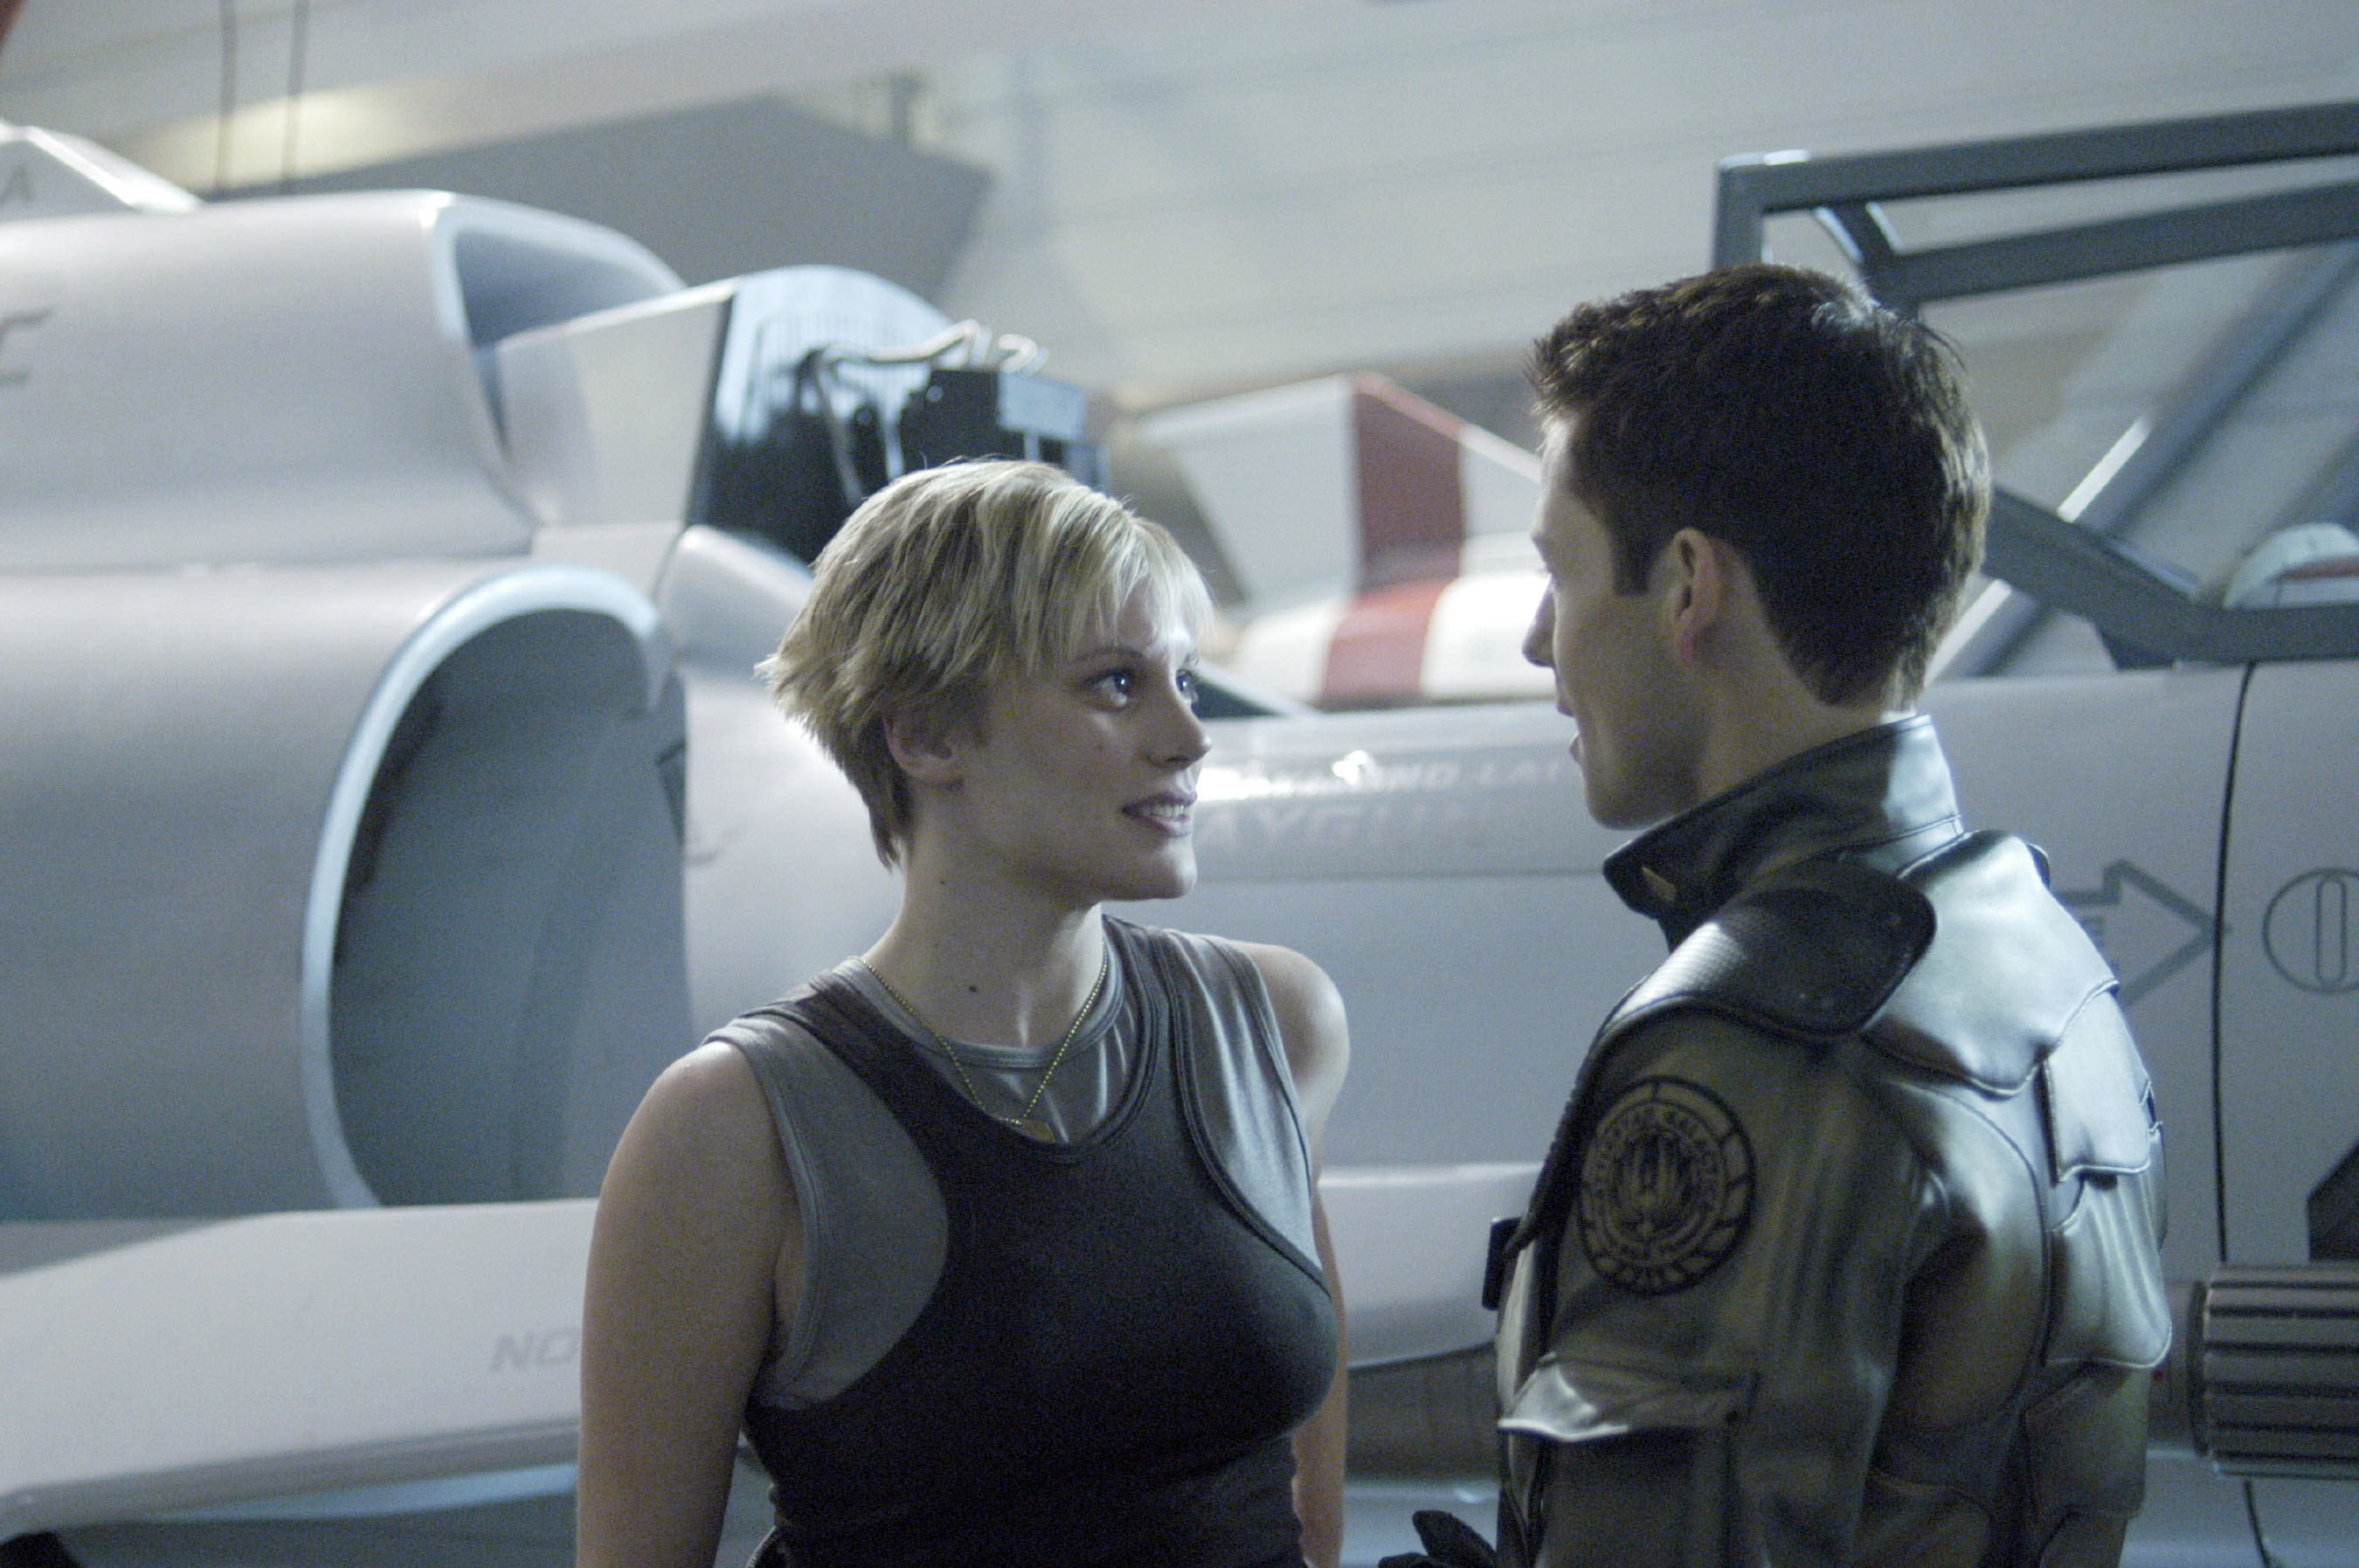 'Battlestar Galactica' Is Now a Classic — 15 Years Ago, Fans Thought It Was a Mistake